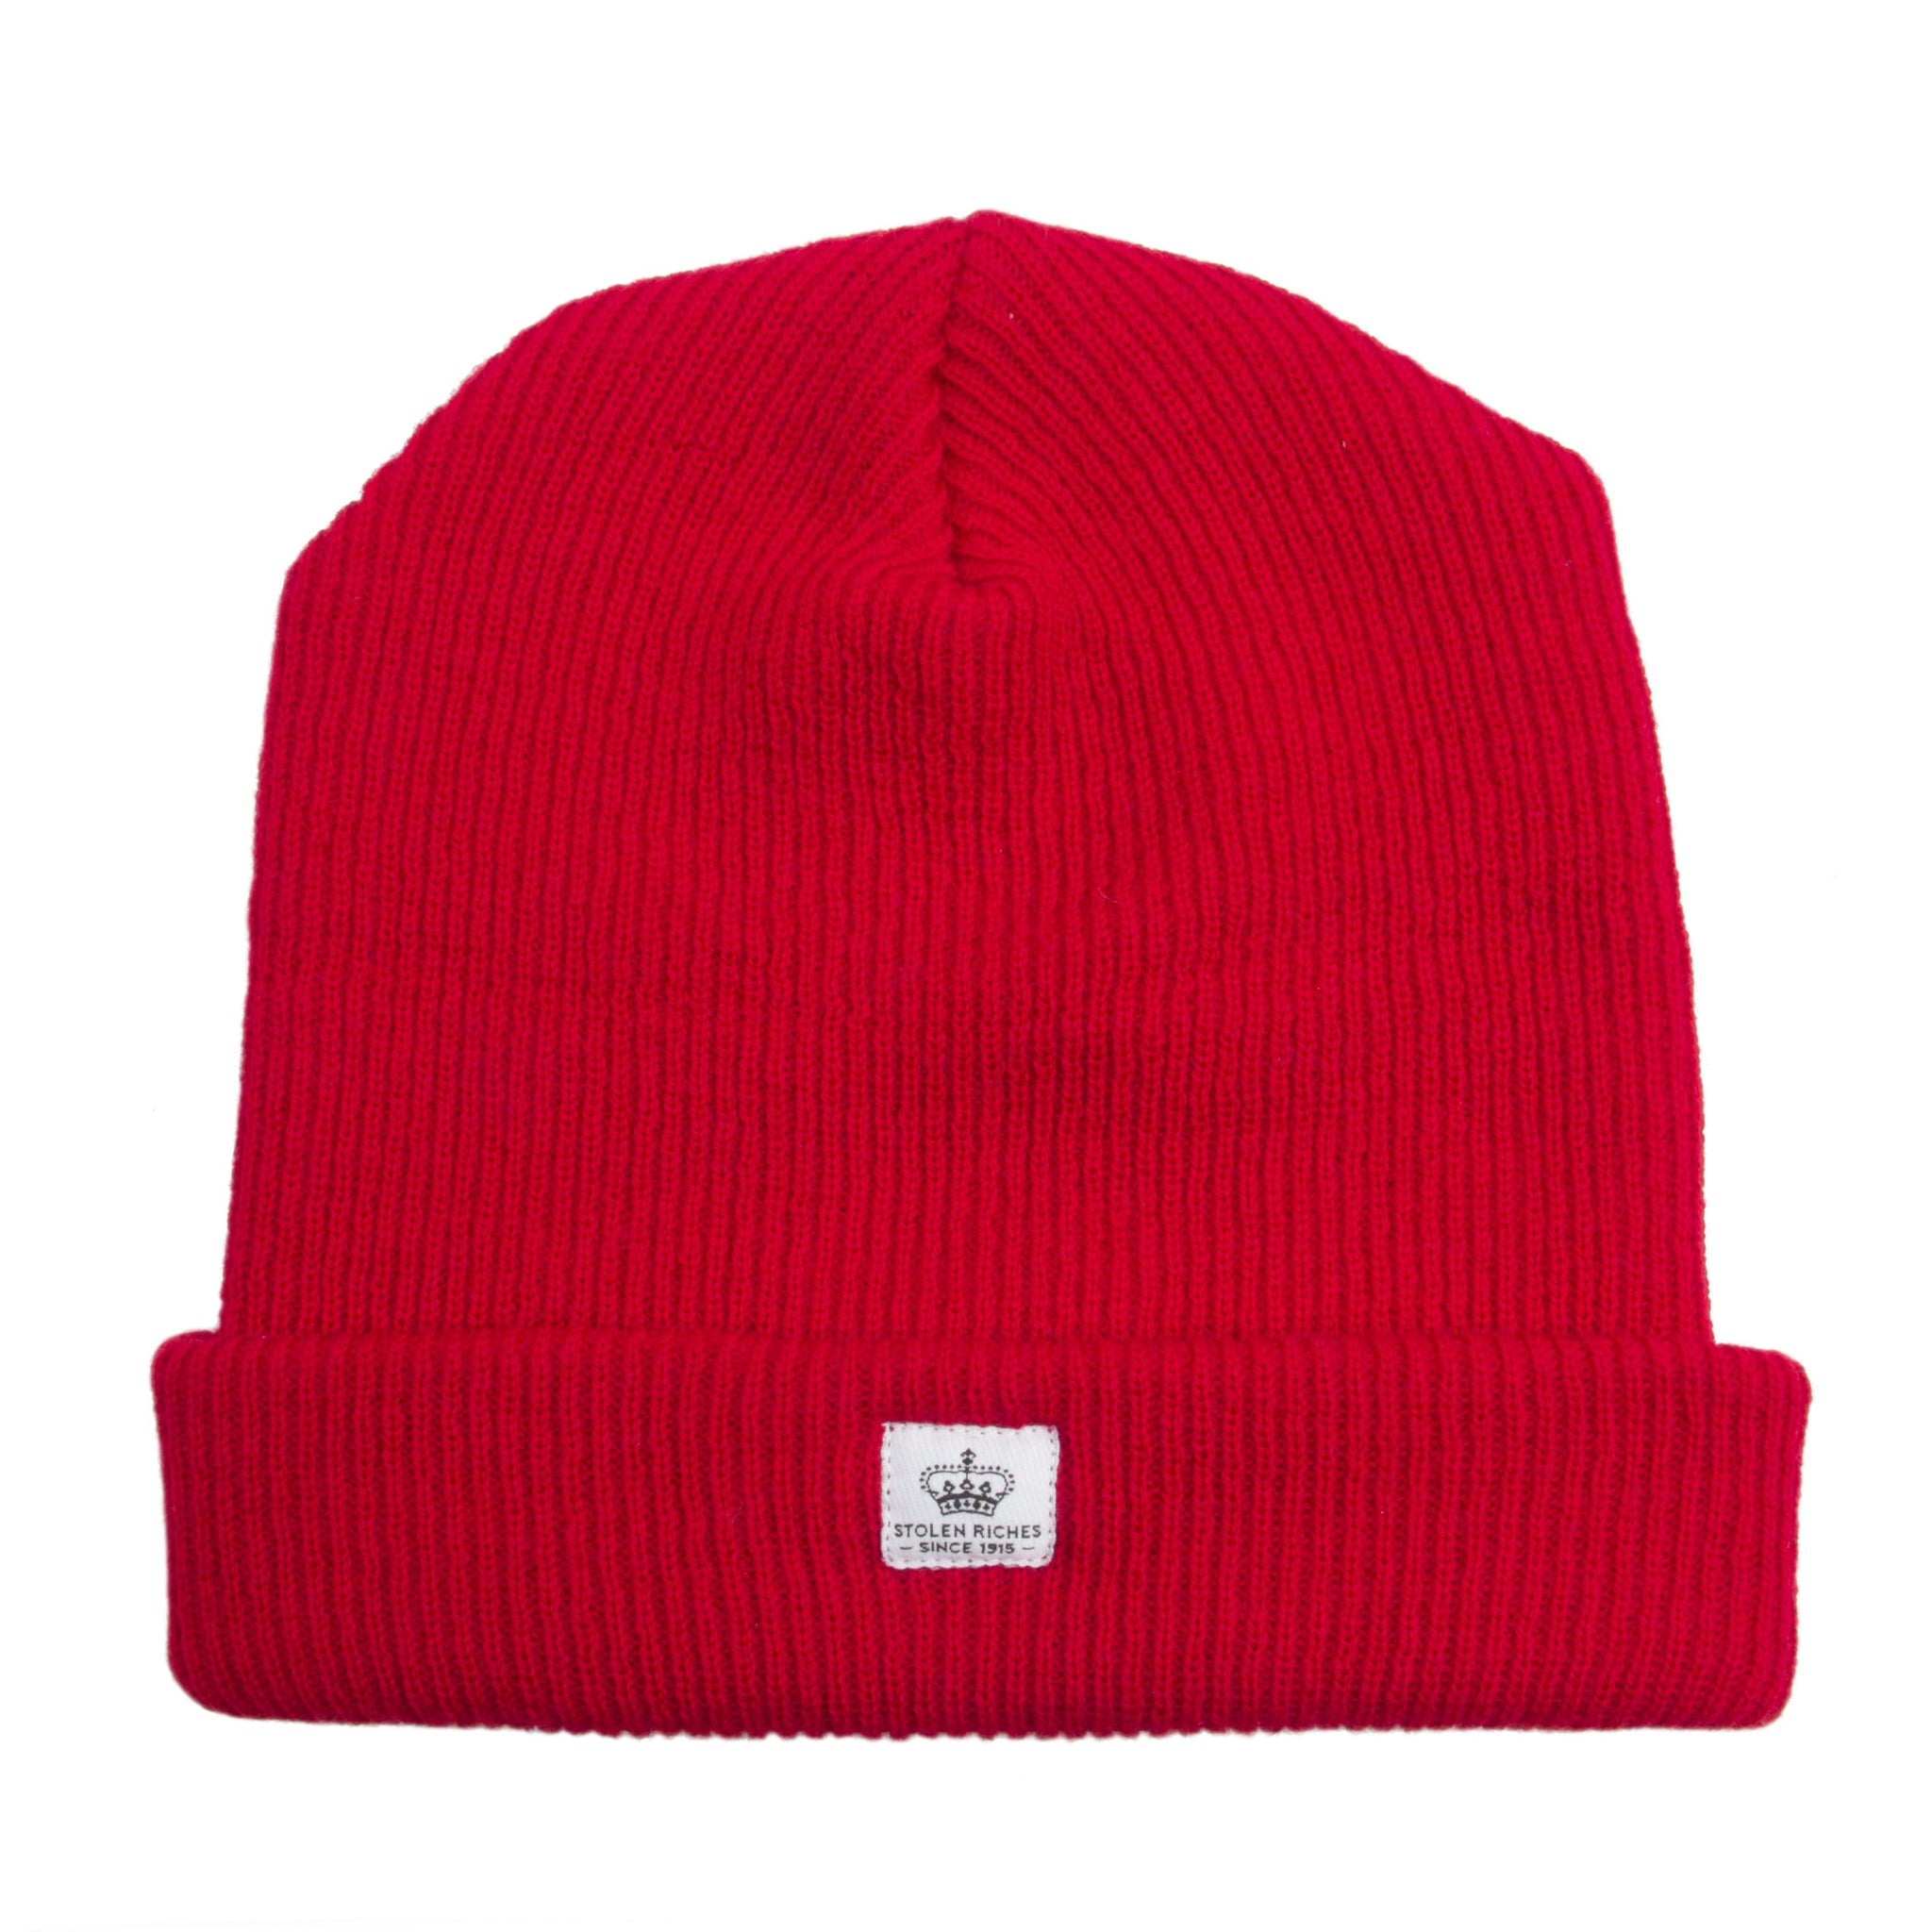 Portsalon Red Wool Toque - Stolen Riches